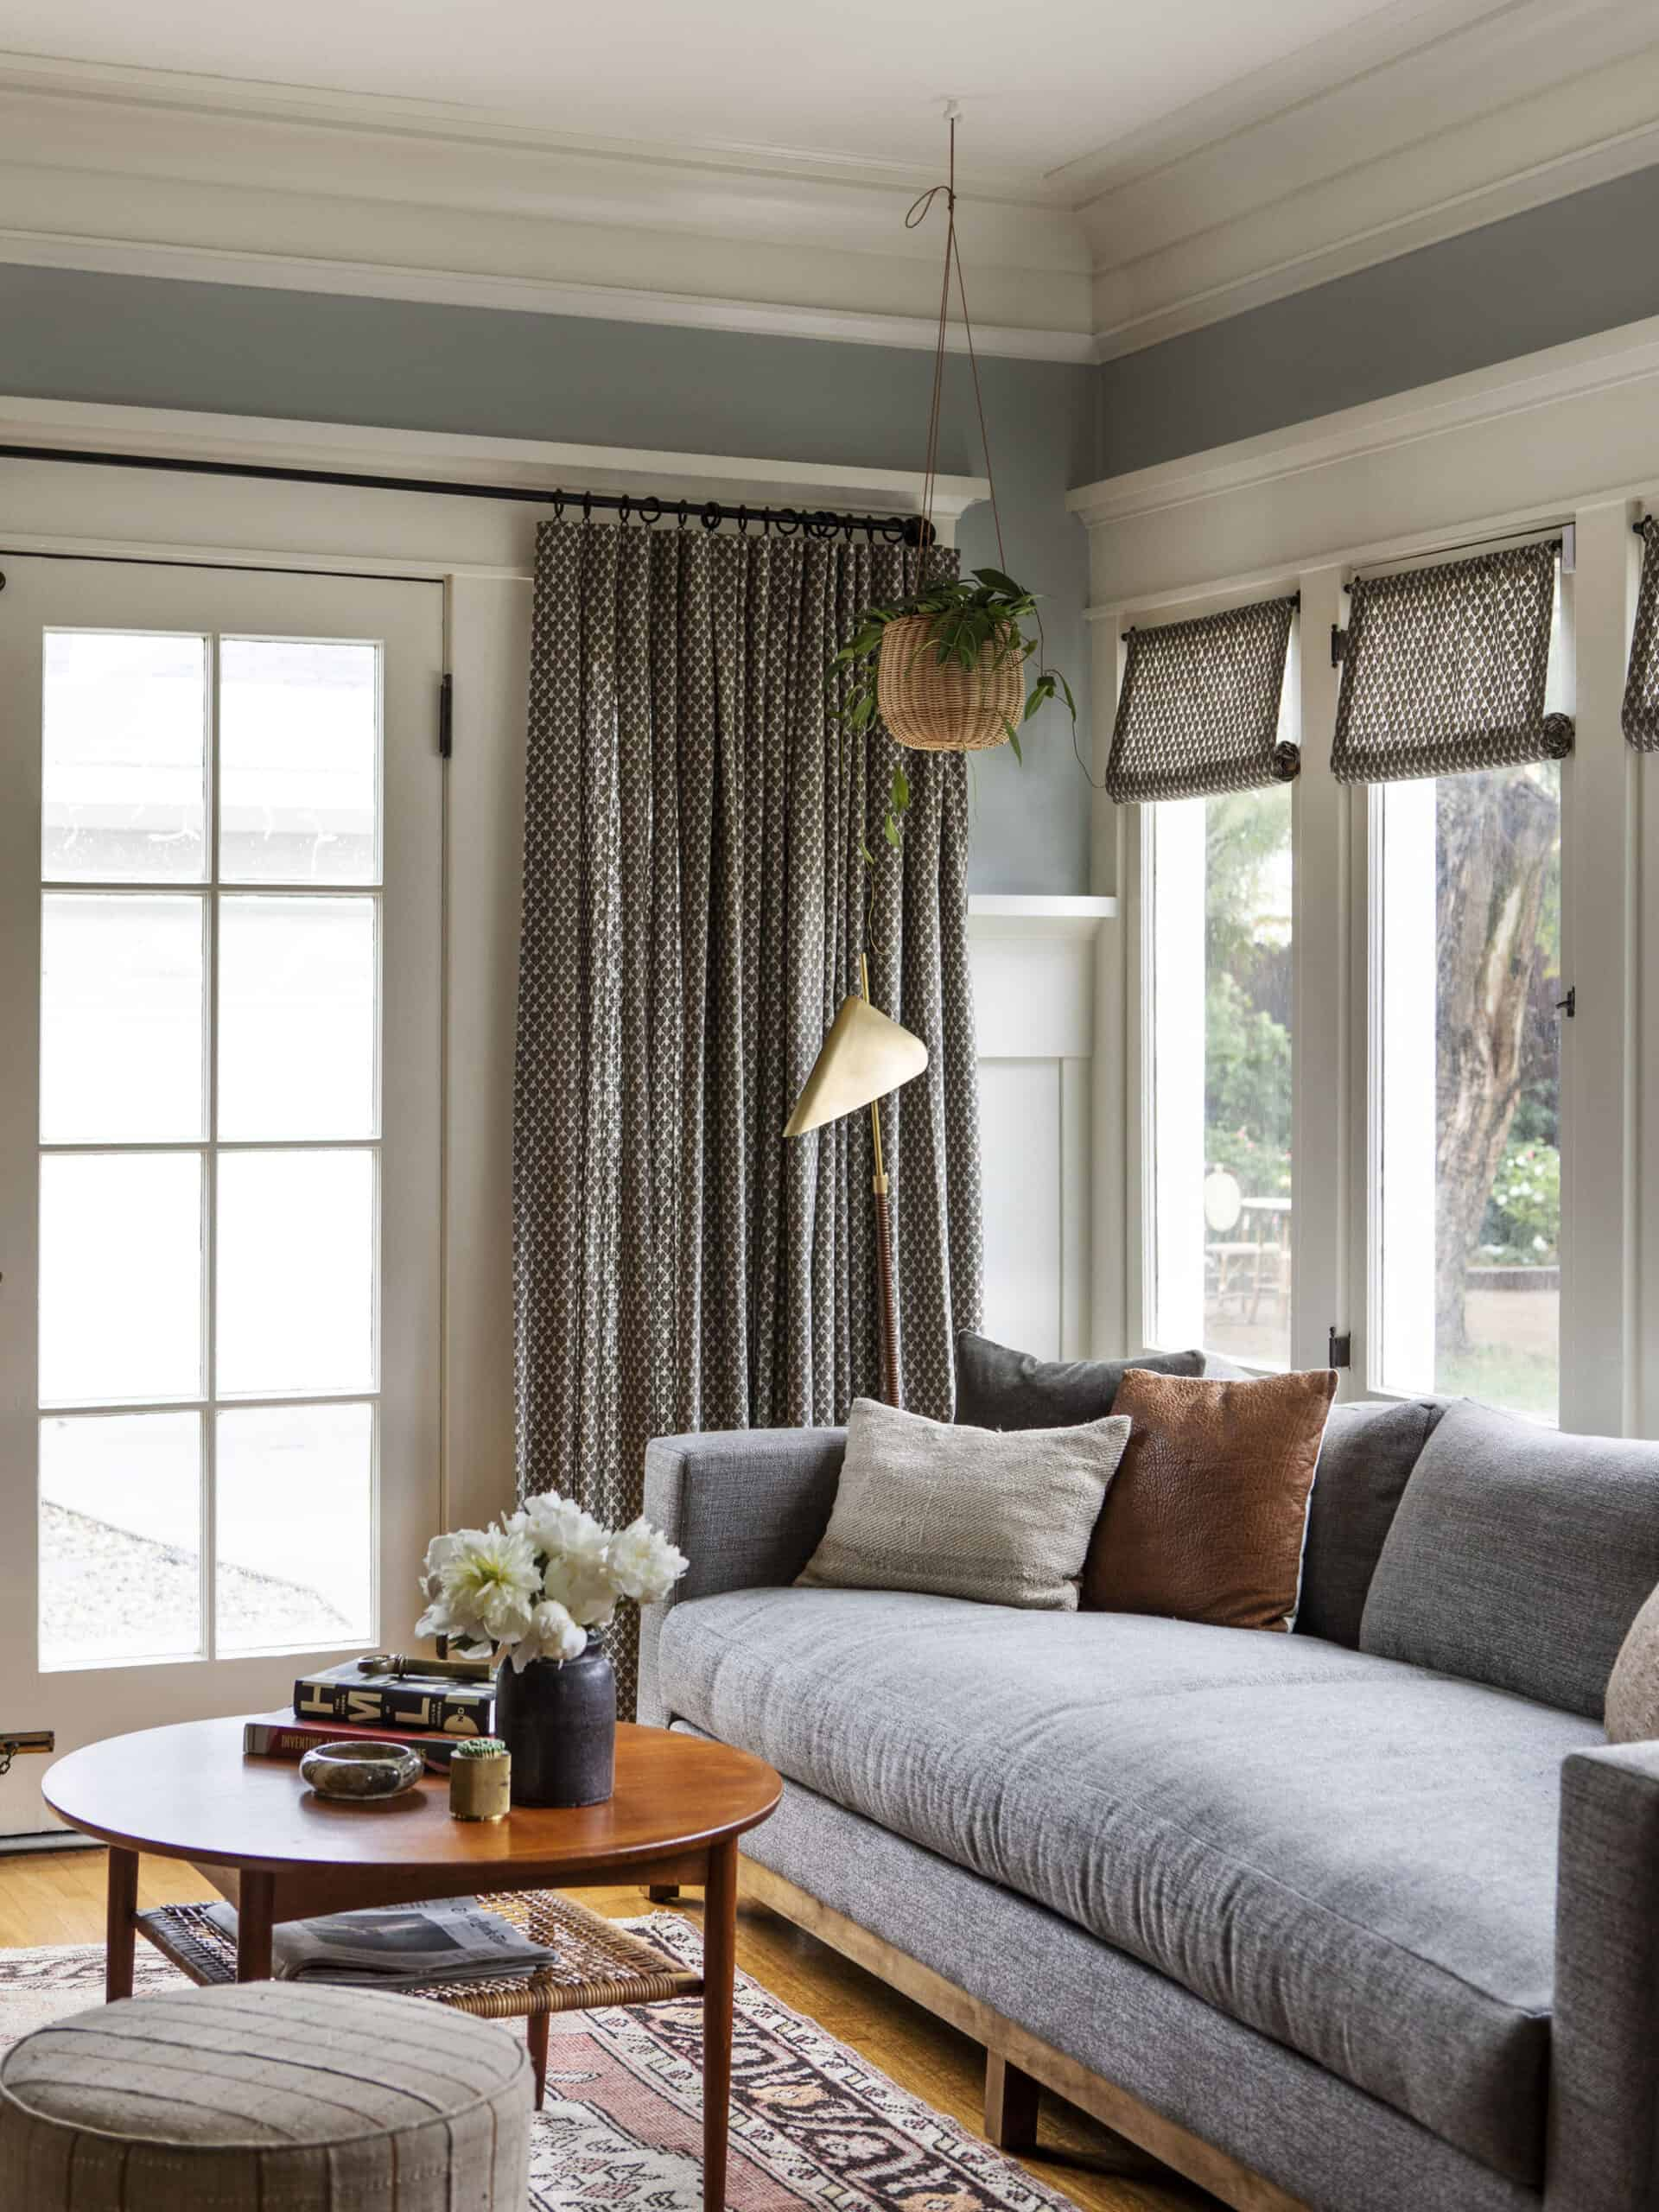 Corner of living room with brown curtains and roman shades, blue couch, and hanging plant